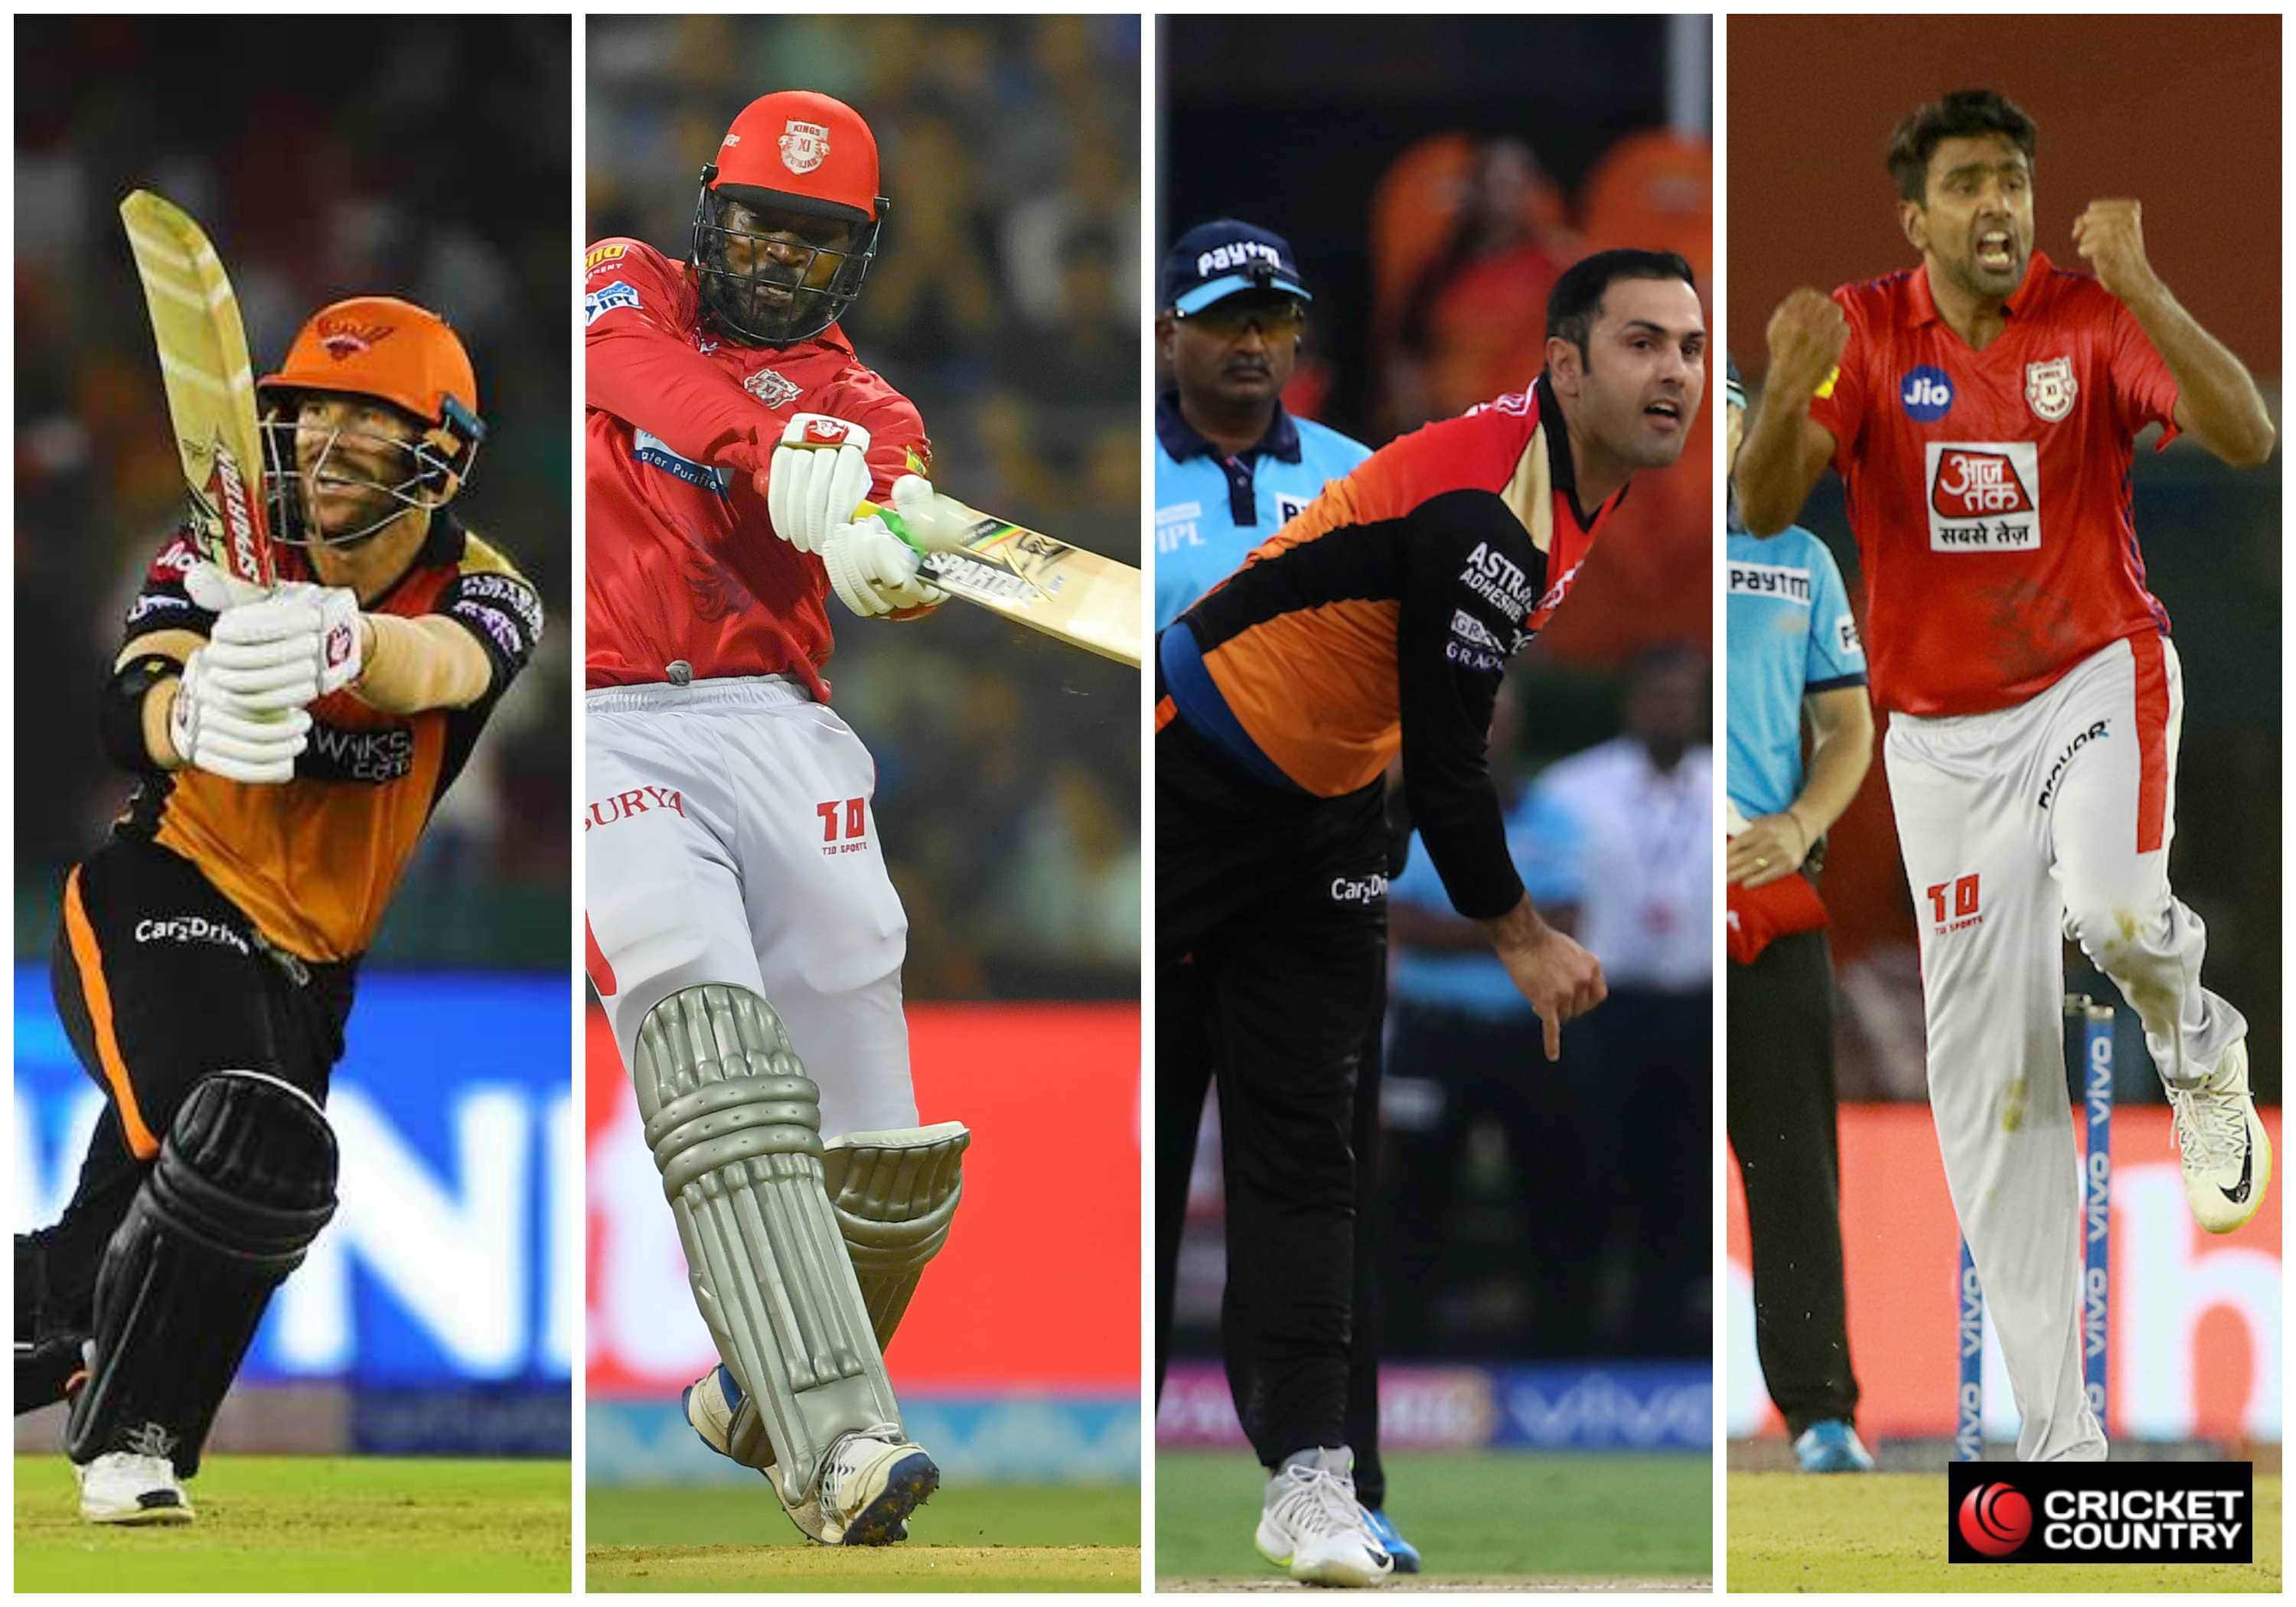 SRH vs KXIP Dream11 Team - SRH vs KXIP My Team11, SRH vs